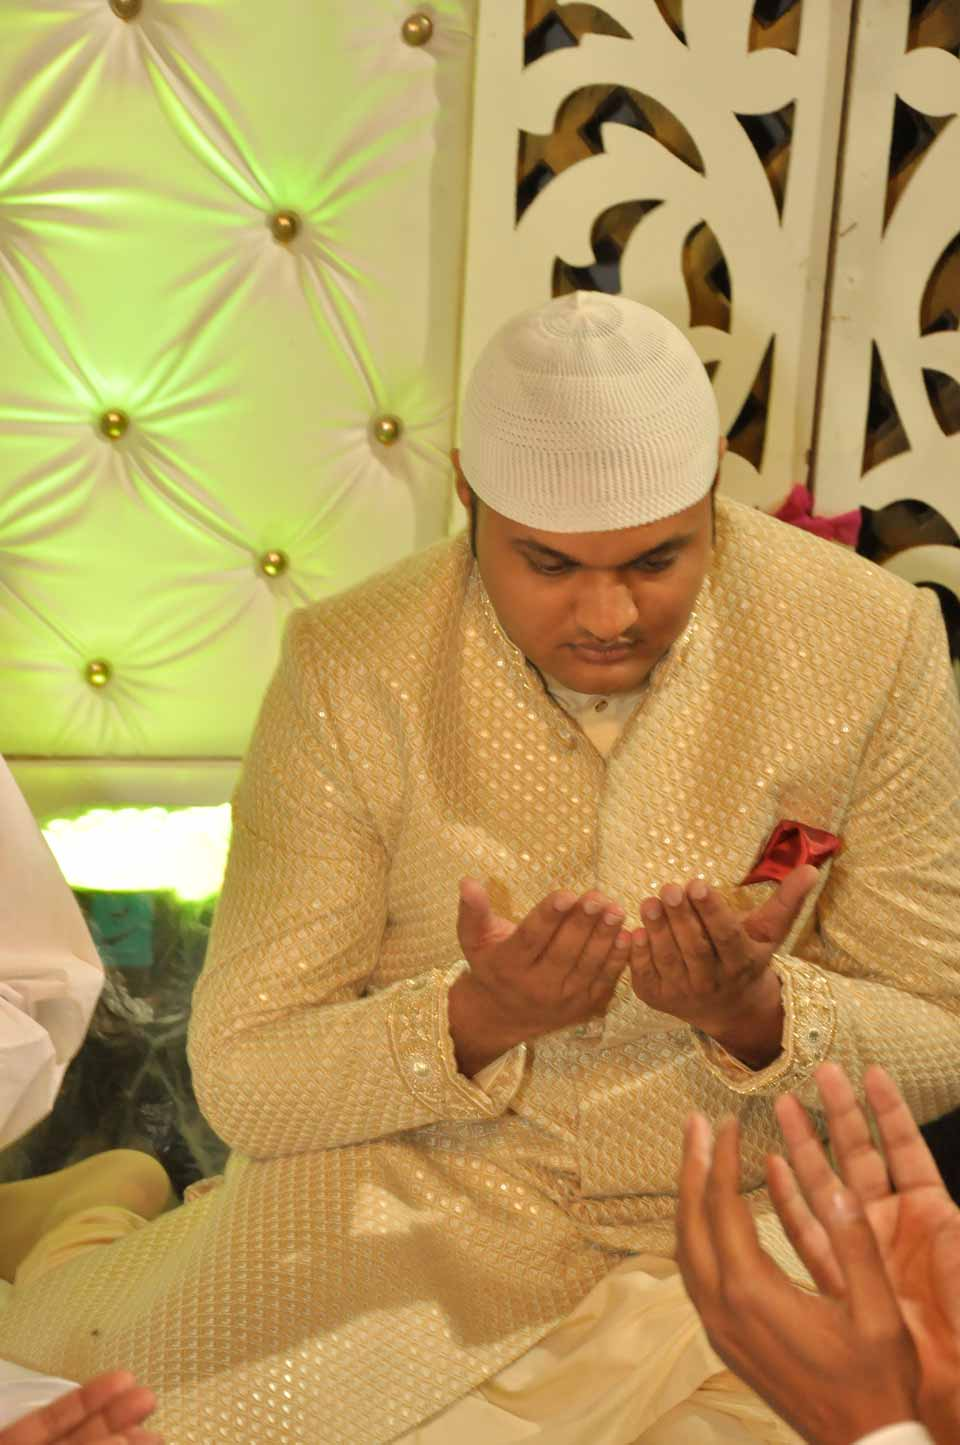 Imran Pervez is very busy in doing the dua